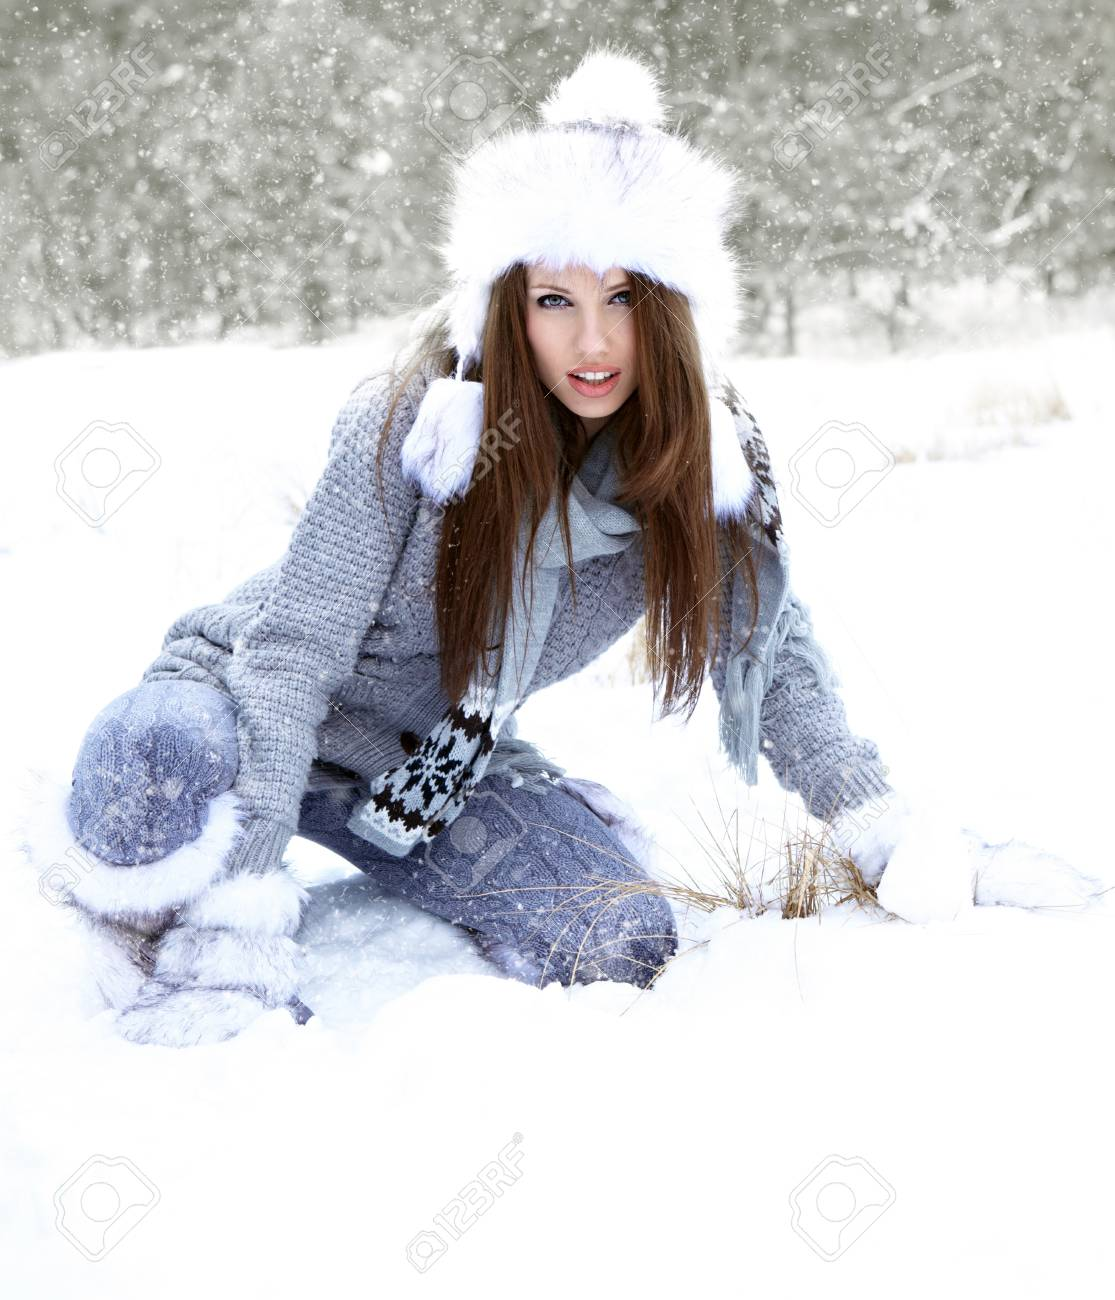 Young woman winter portrait. Shallow dof. Stock Photo - 15807038